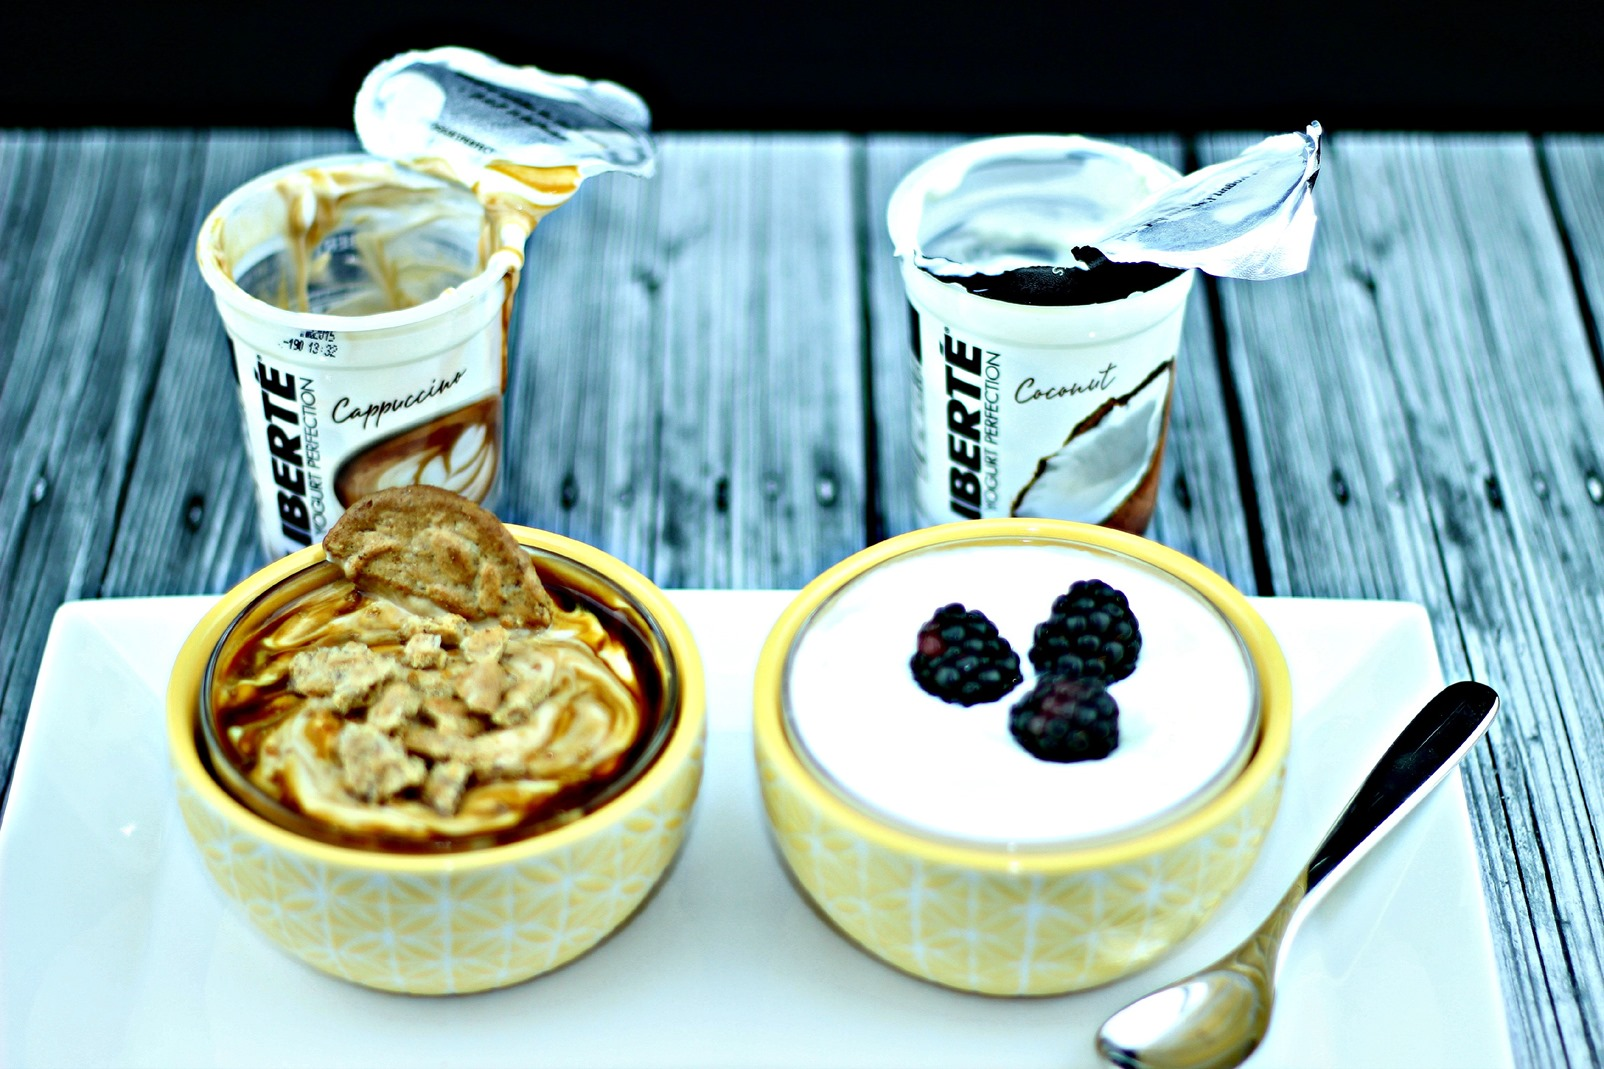 Simple way to create a #YogurtPerfection in the morning with Publix Liberté yogurt